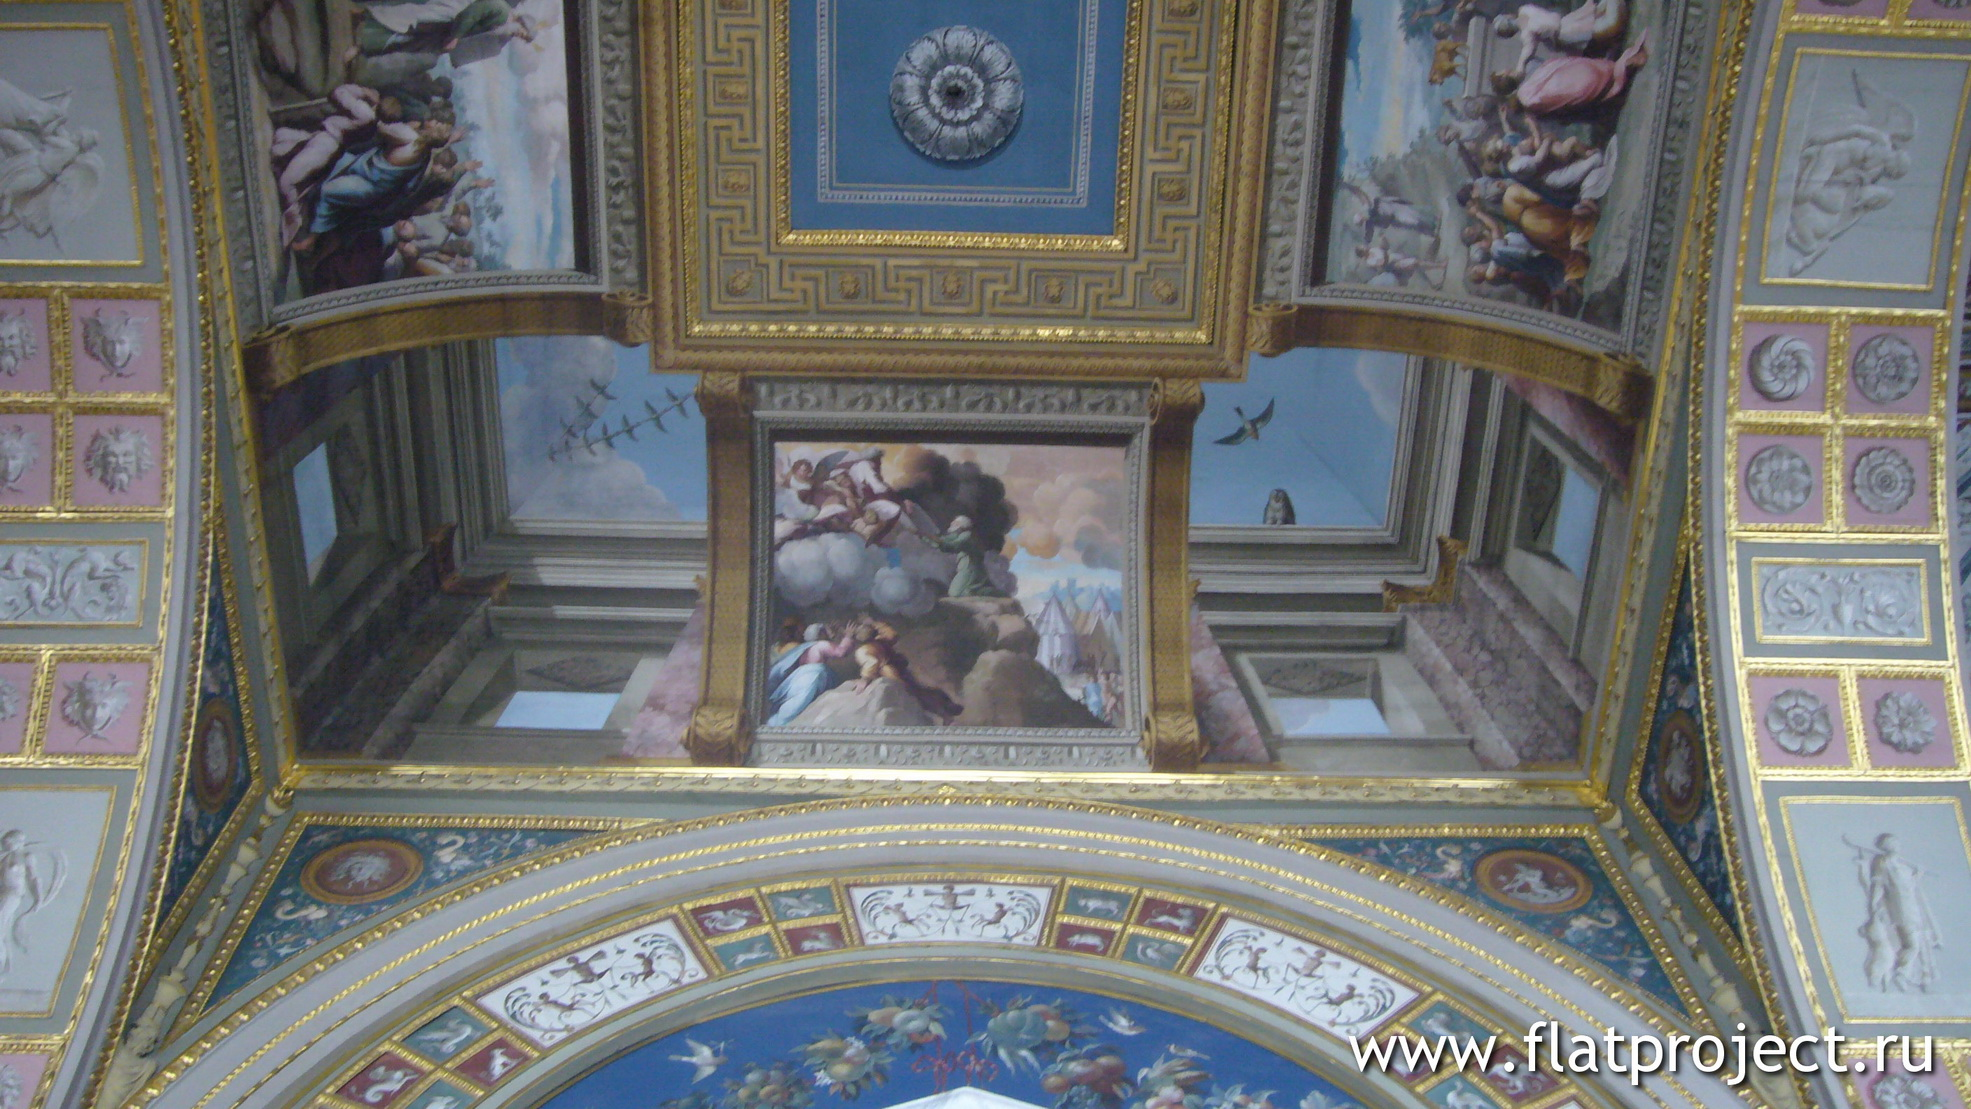 The State Hermitage museum interiors – photo 131